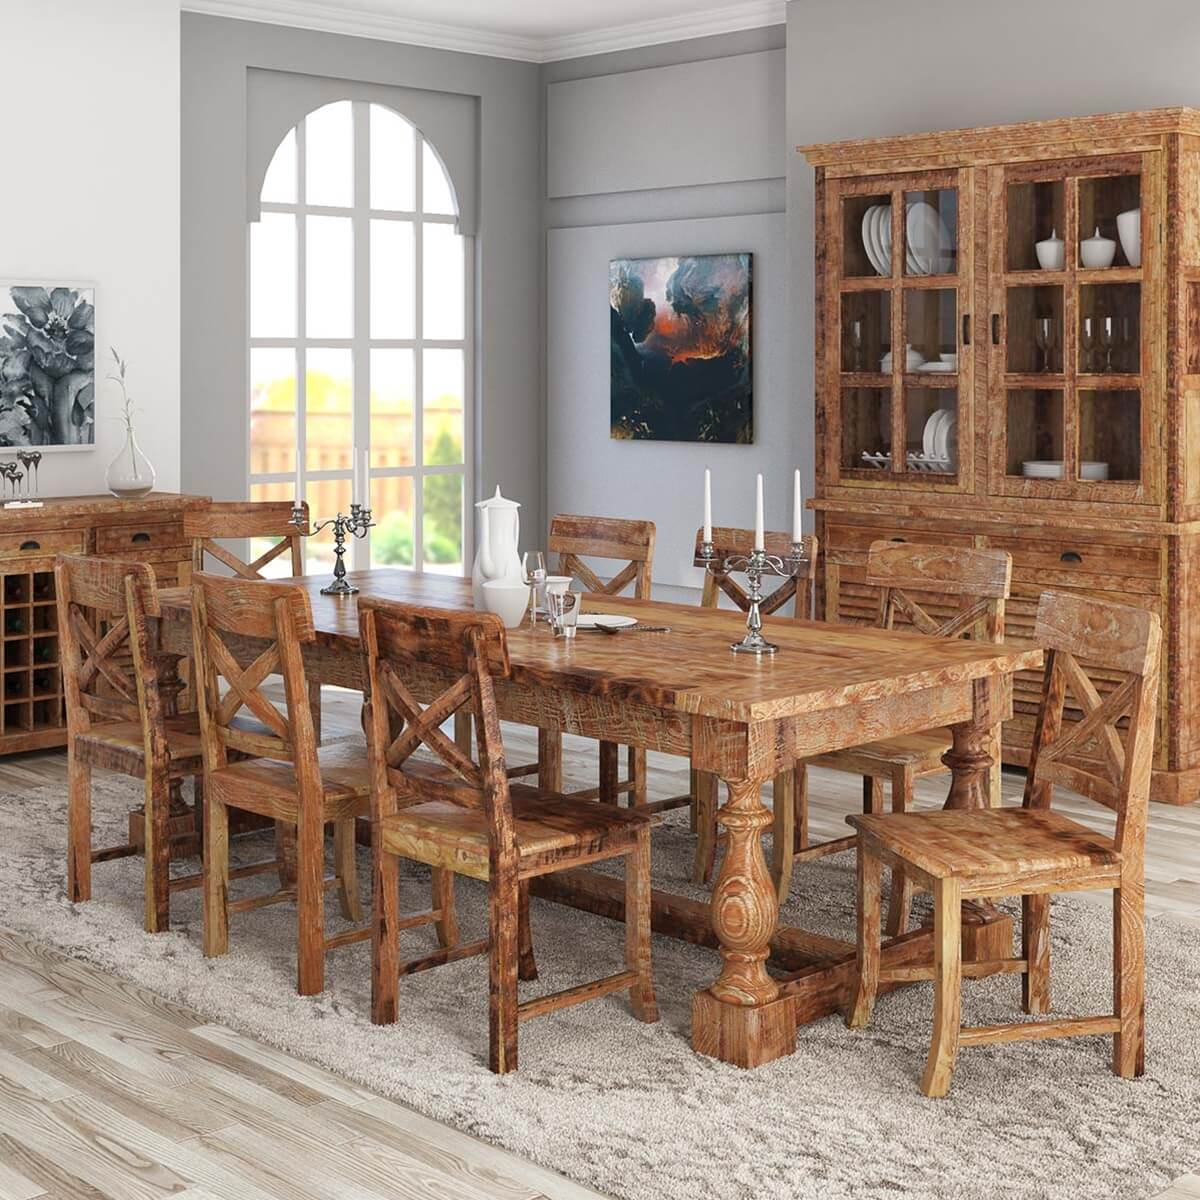 Britain Rustic Teak Wood Trestle Base Dining Table and ...